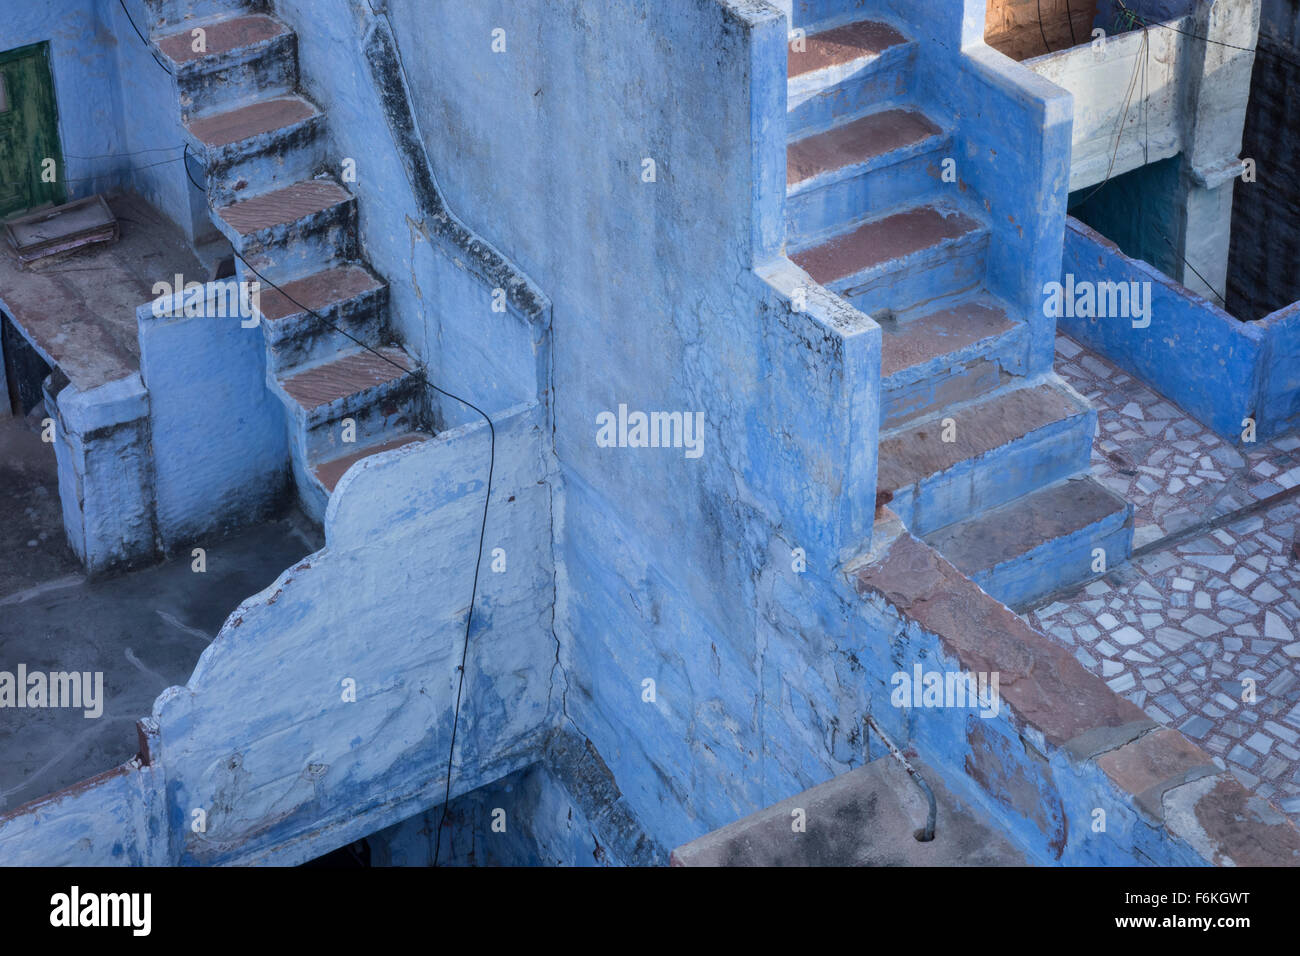 Blue stairs in the blue city. Jodhpur, India. - Stock Image